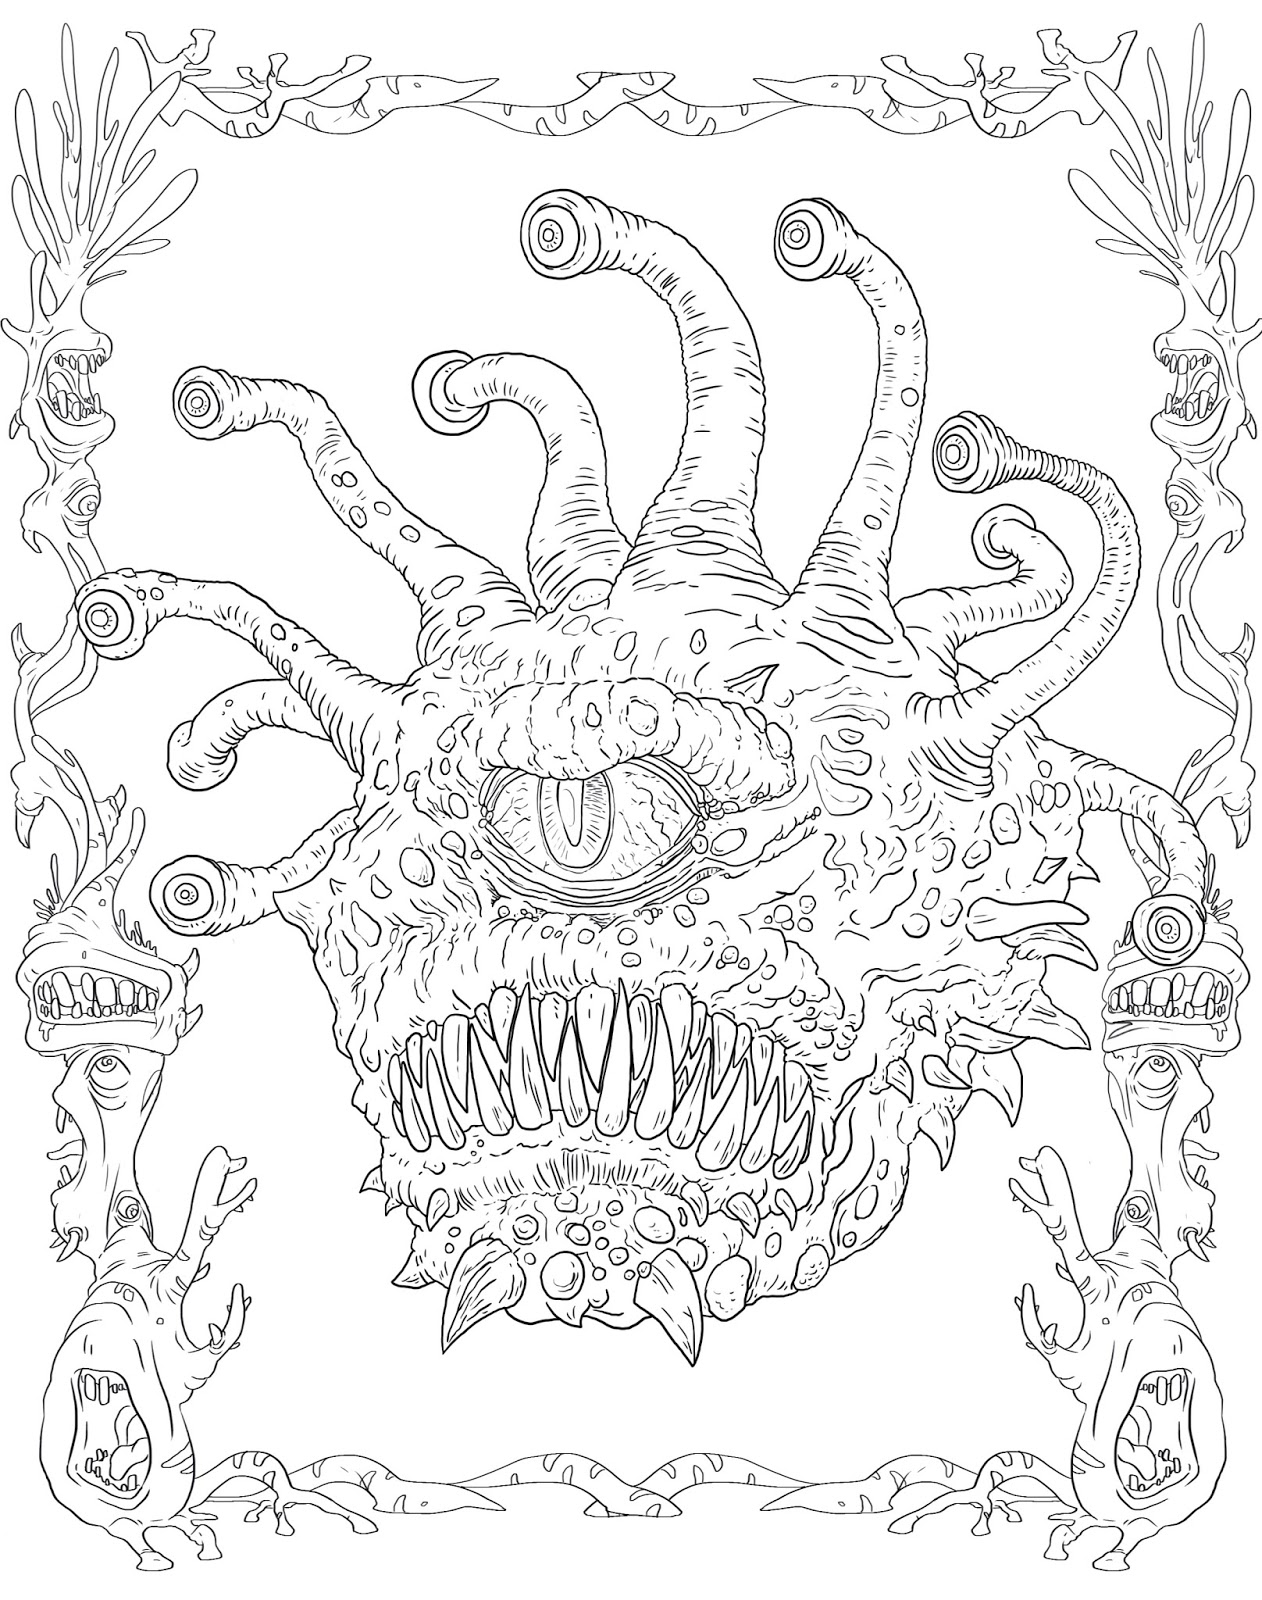 Dungeons And Drago - Free Coloring Pages